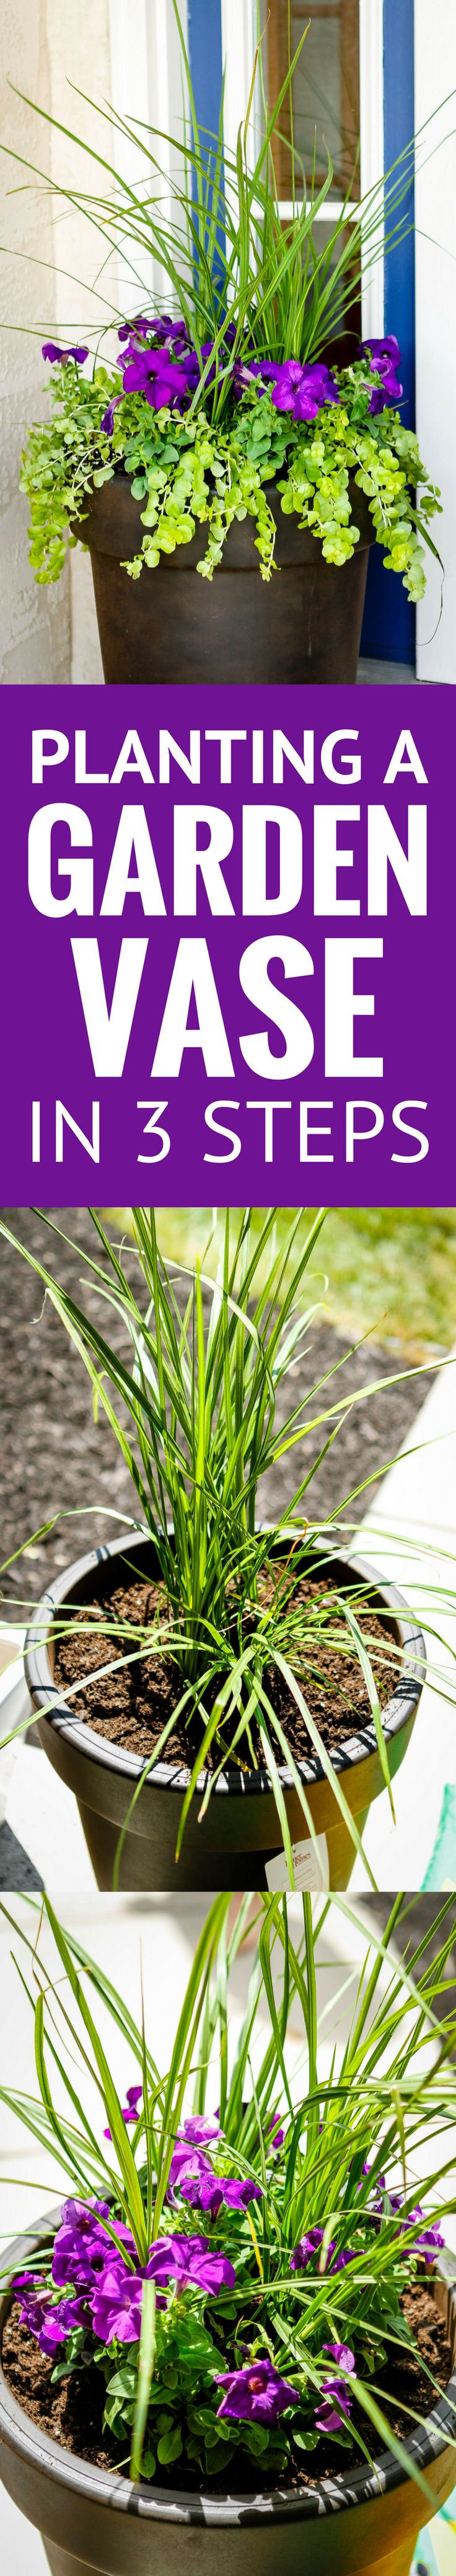 Planting a Perfectly Proportioned Garden Vase -- 3 easy steps to planting a garden vase that will be a beautiful focal point for your front porch, patio or deck! | how to plant flowers in large planters | how to plant flowers in pots outdoors | how to plant outdoor planters | planting in pots ideas | find the tutorial on unsophisticook.com